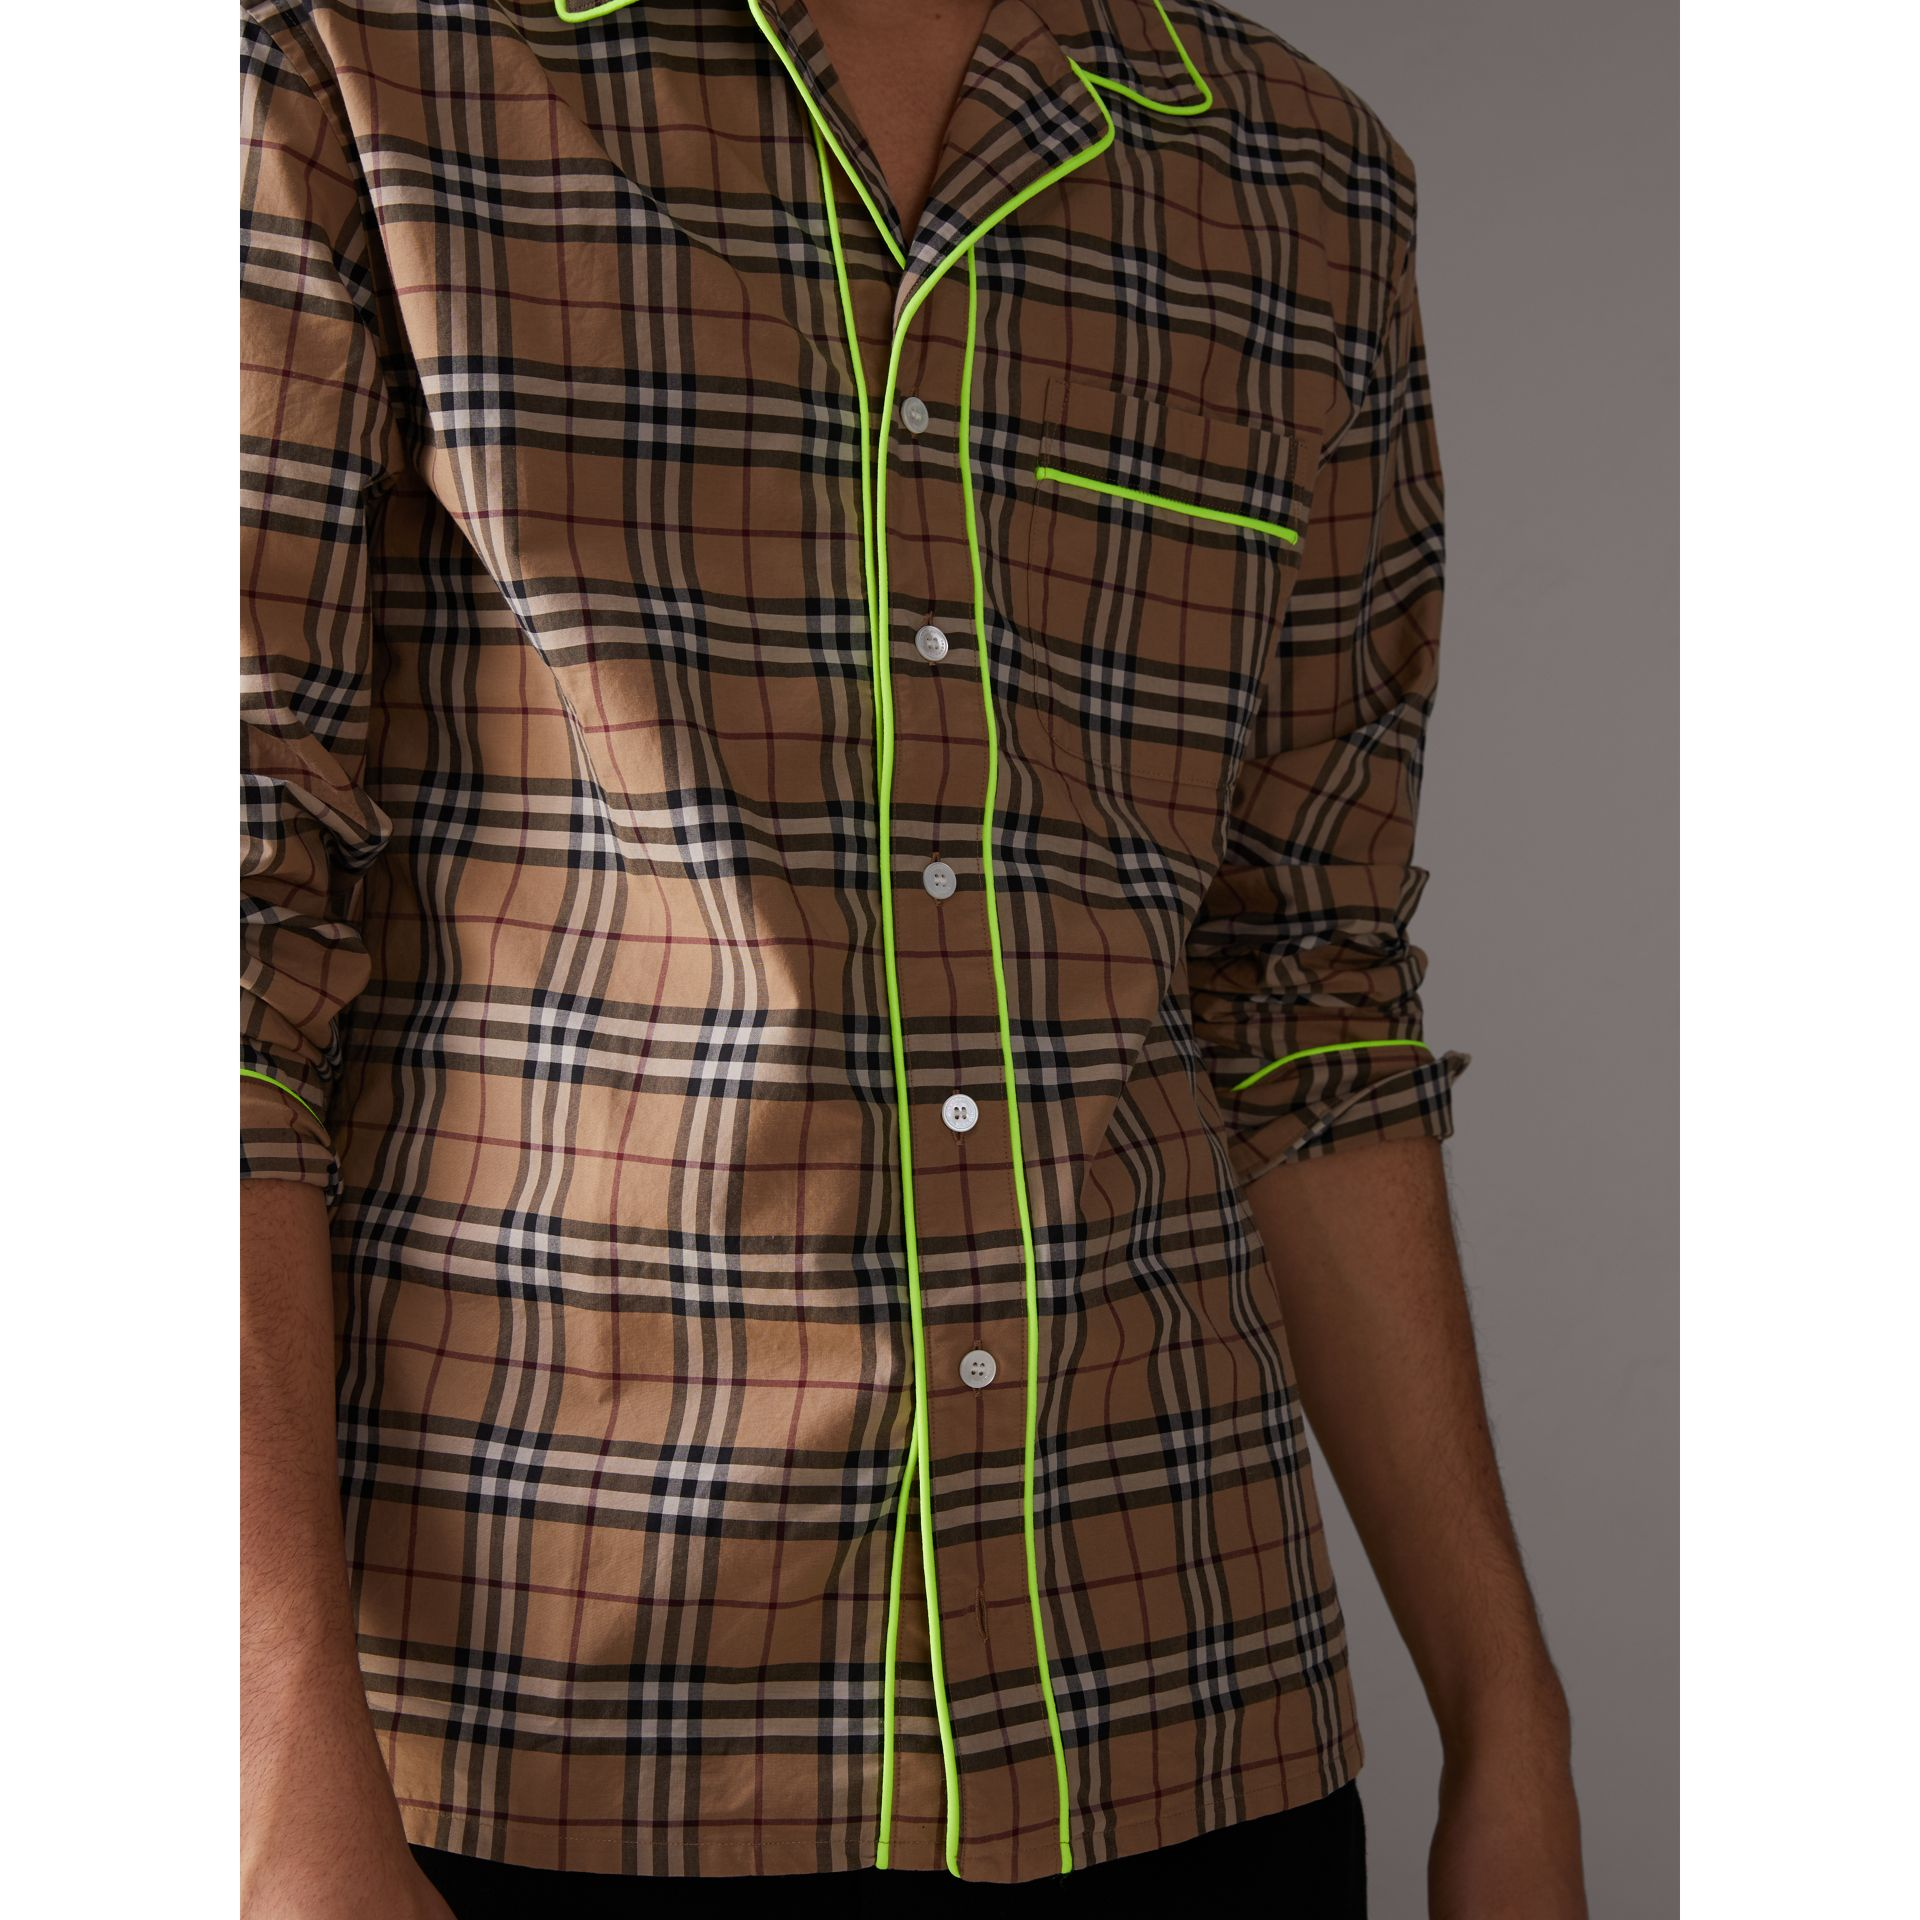 Contrast Piping Check Cotton Pyjama-style Shirt in Camel - Men | Burberry - gallery image 1